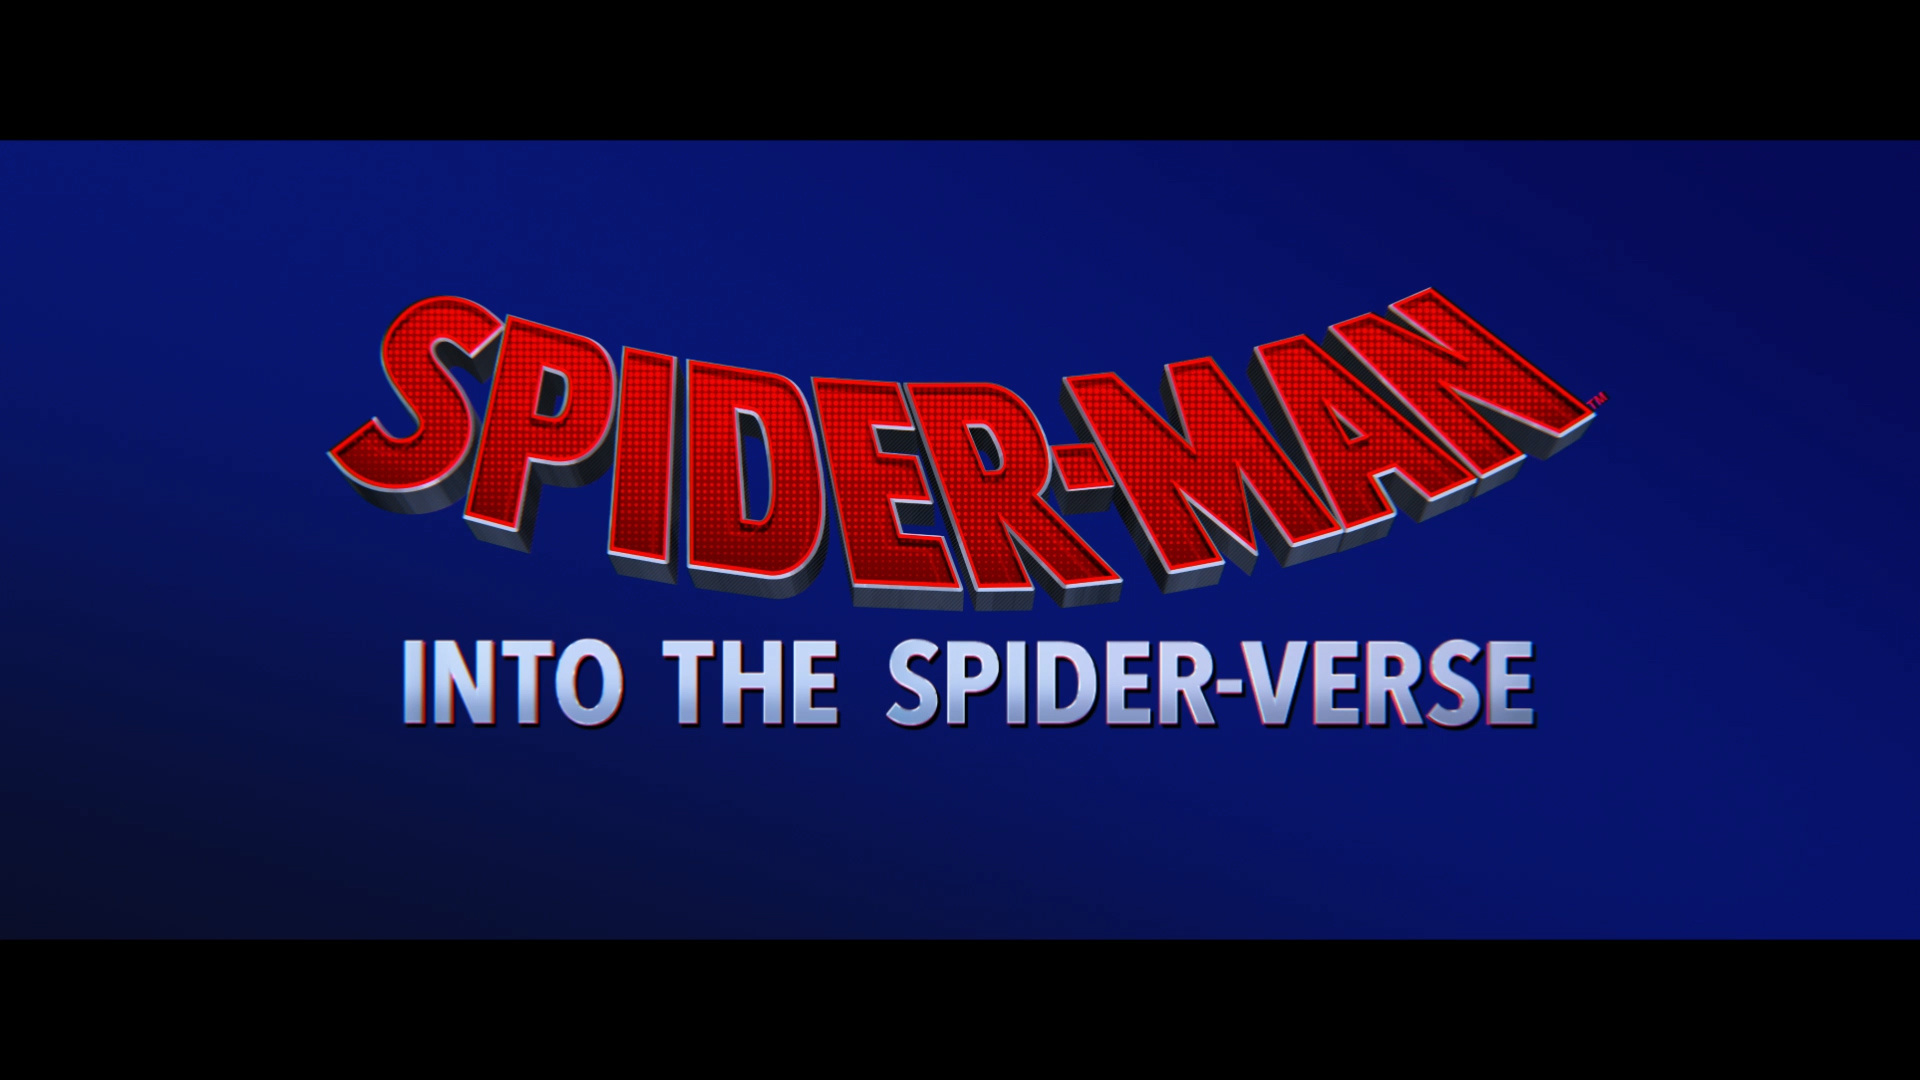 Thumbnail for Spiderman: Into the Spider-Verse - Campaign